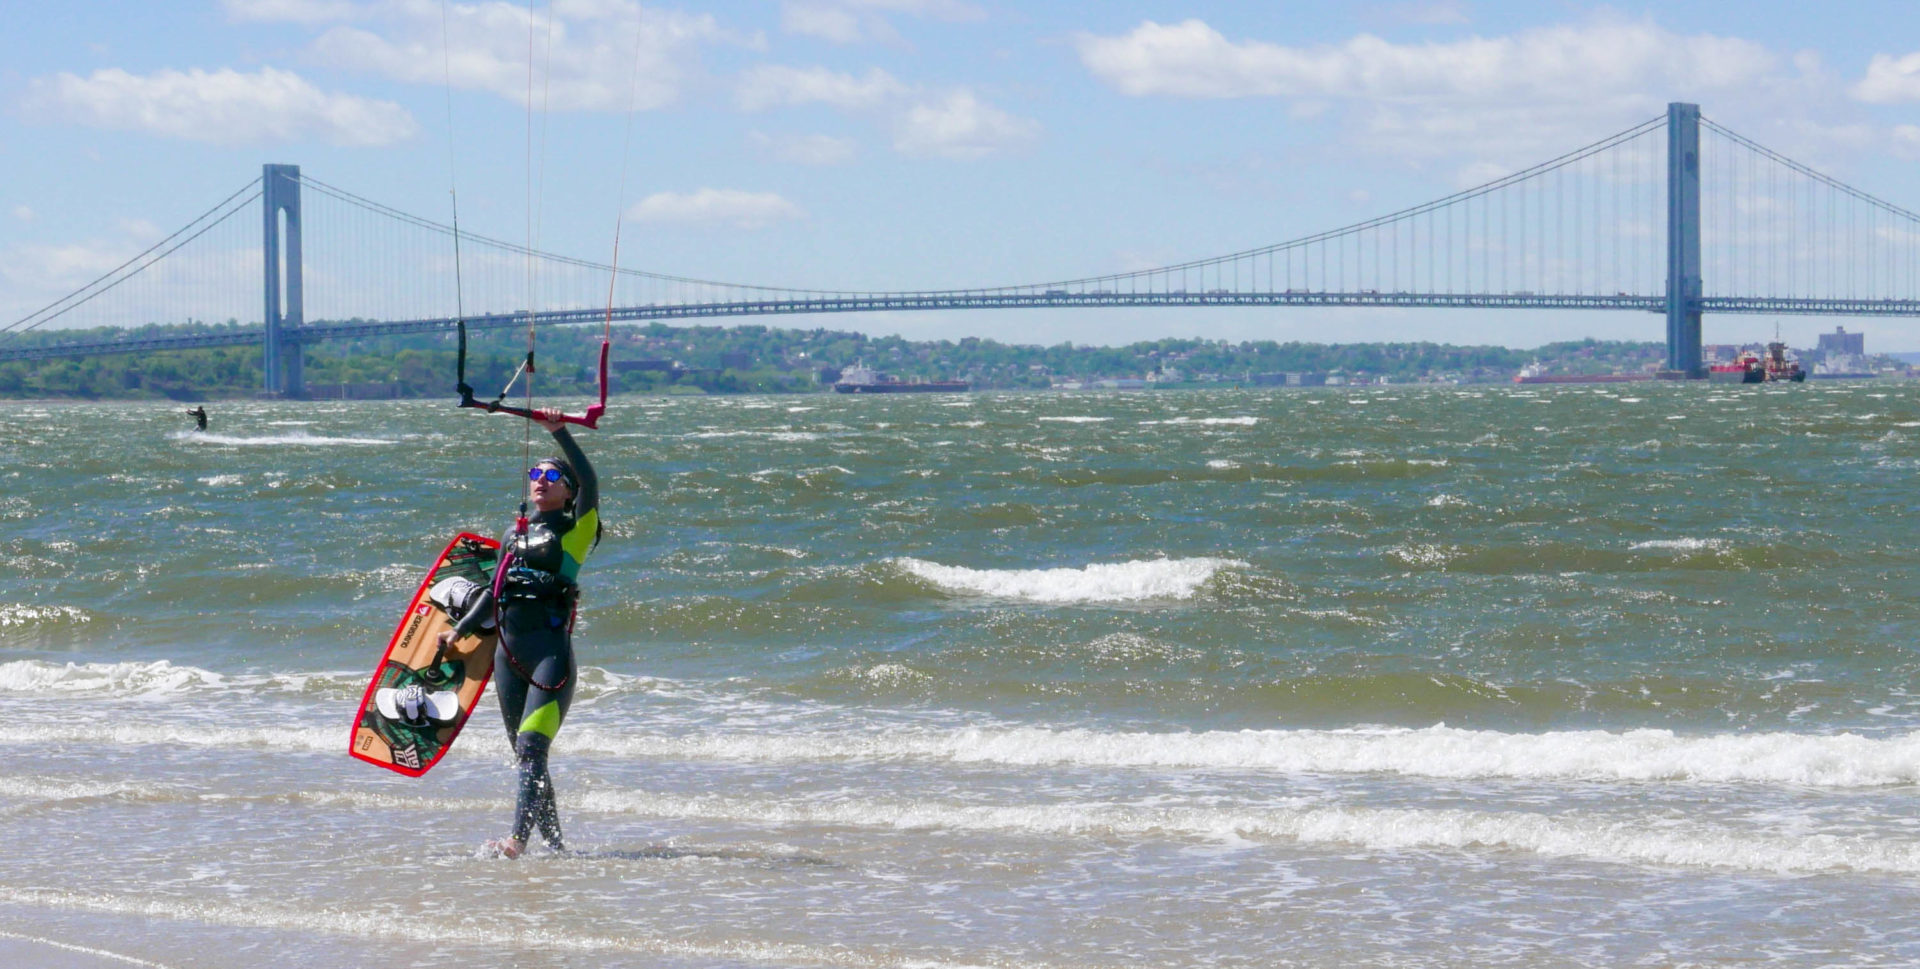 To kiteboard, you must first learn to control your kite.